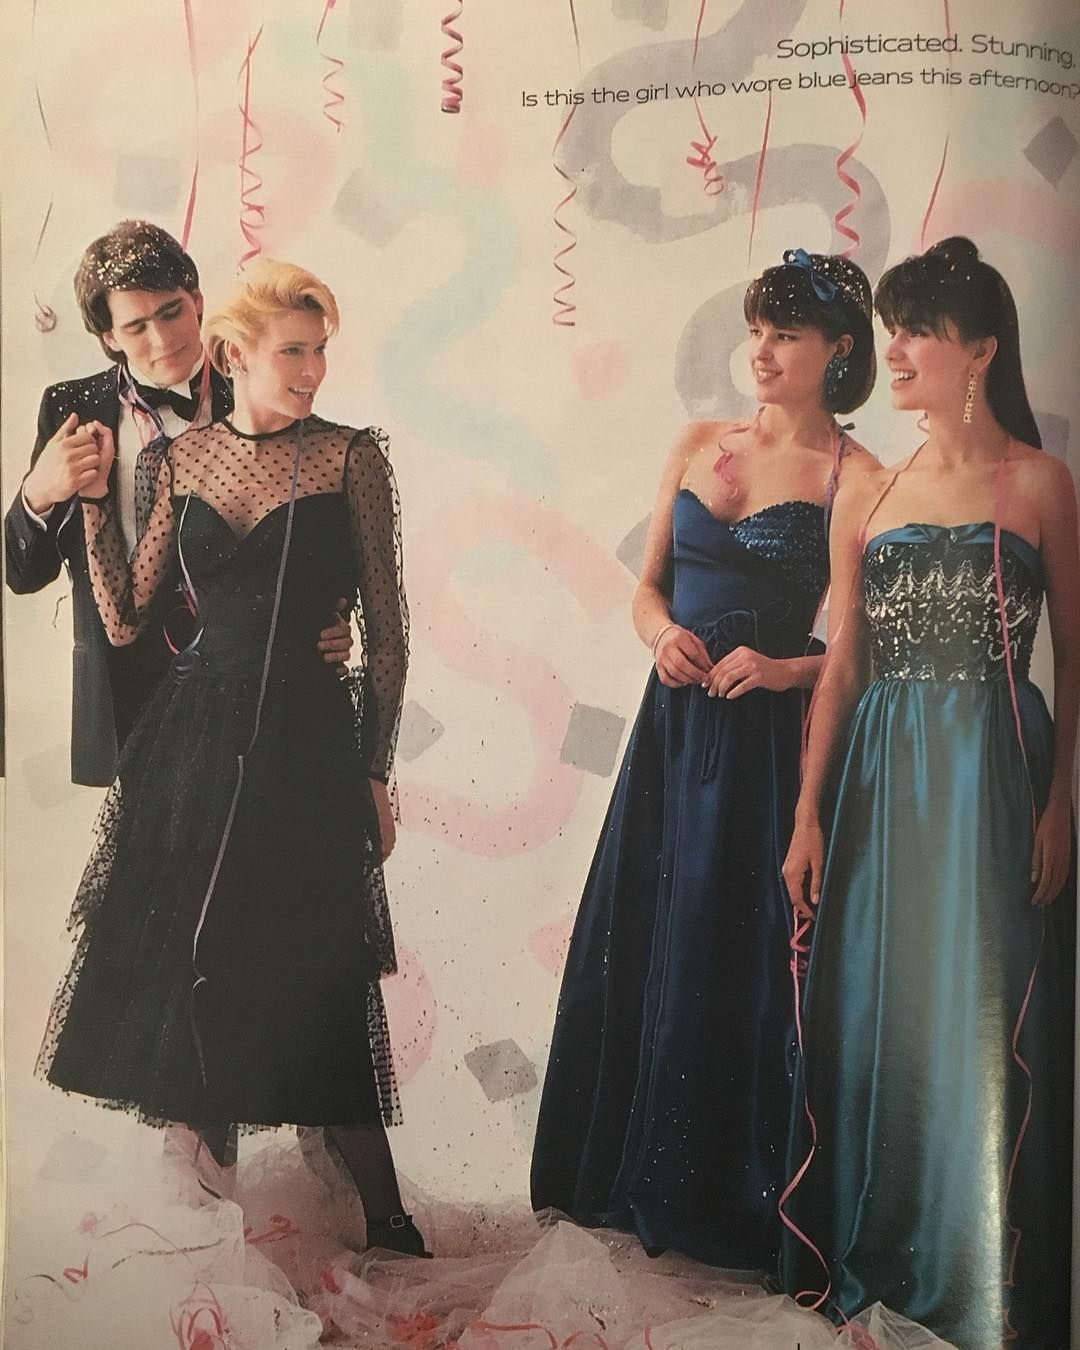 Getting a cinderella and her stepsisters vibe from this seventeen